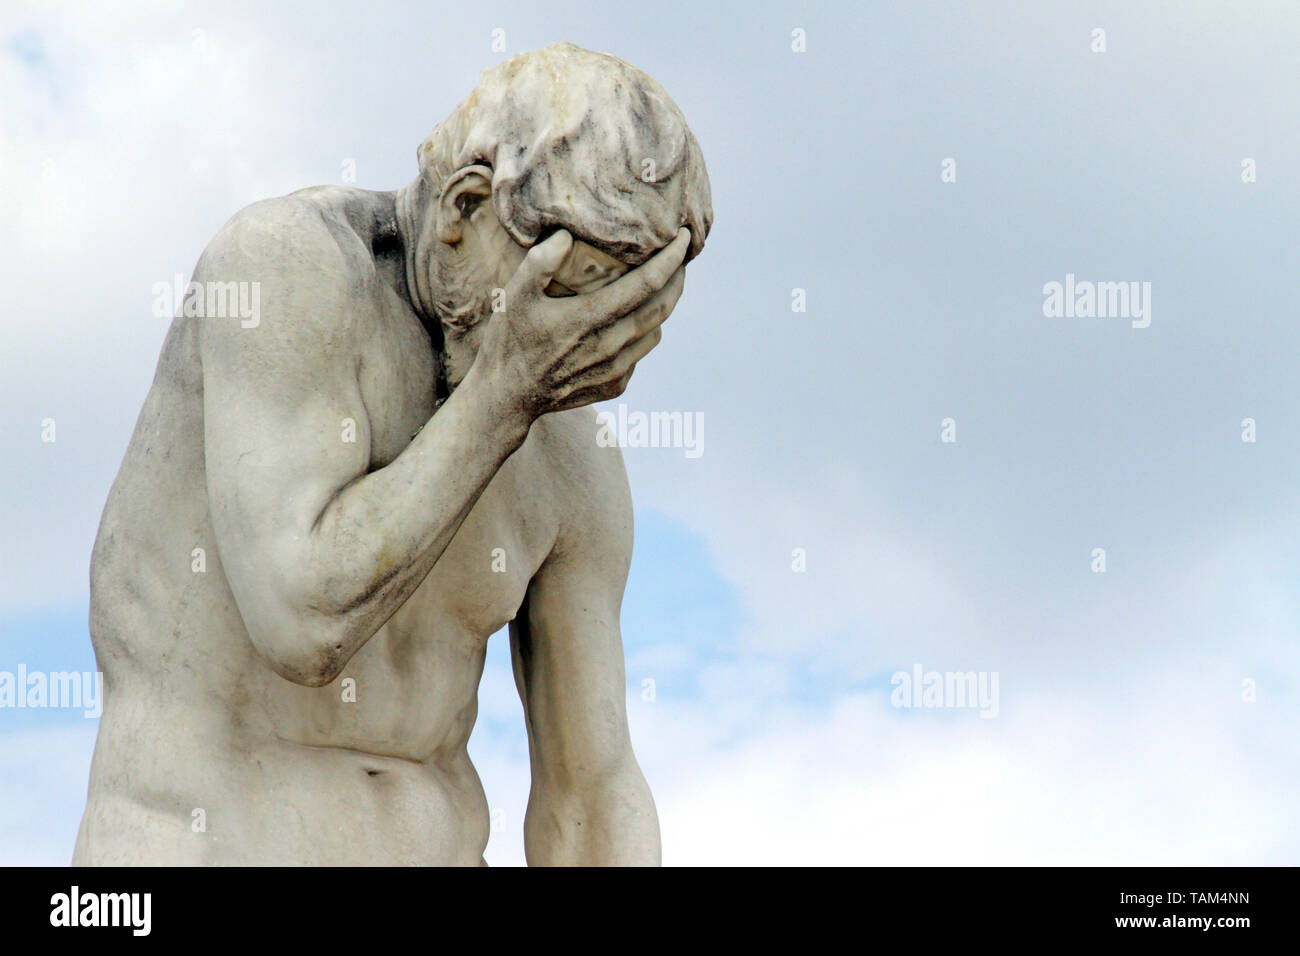 Facepalm - ashamed, sad, depressed. Statue with head in hand - Stock Image